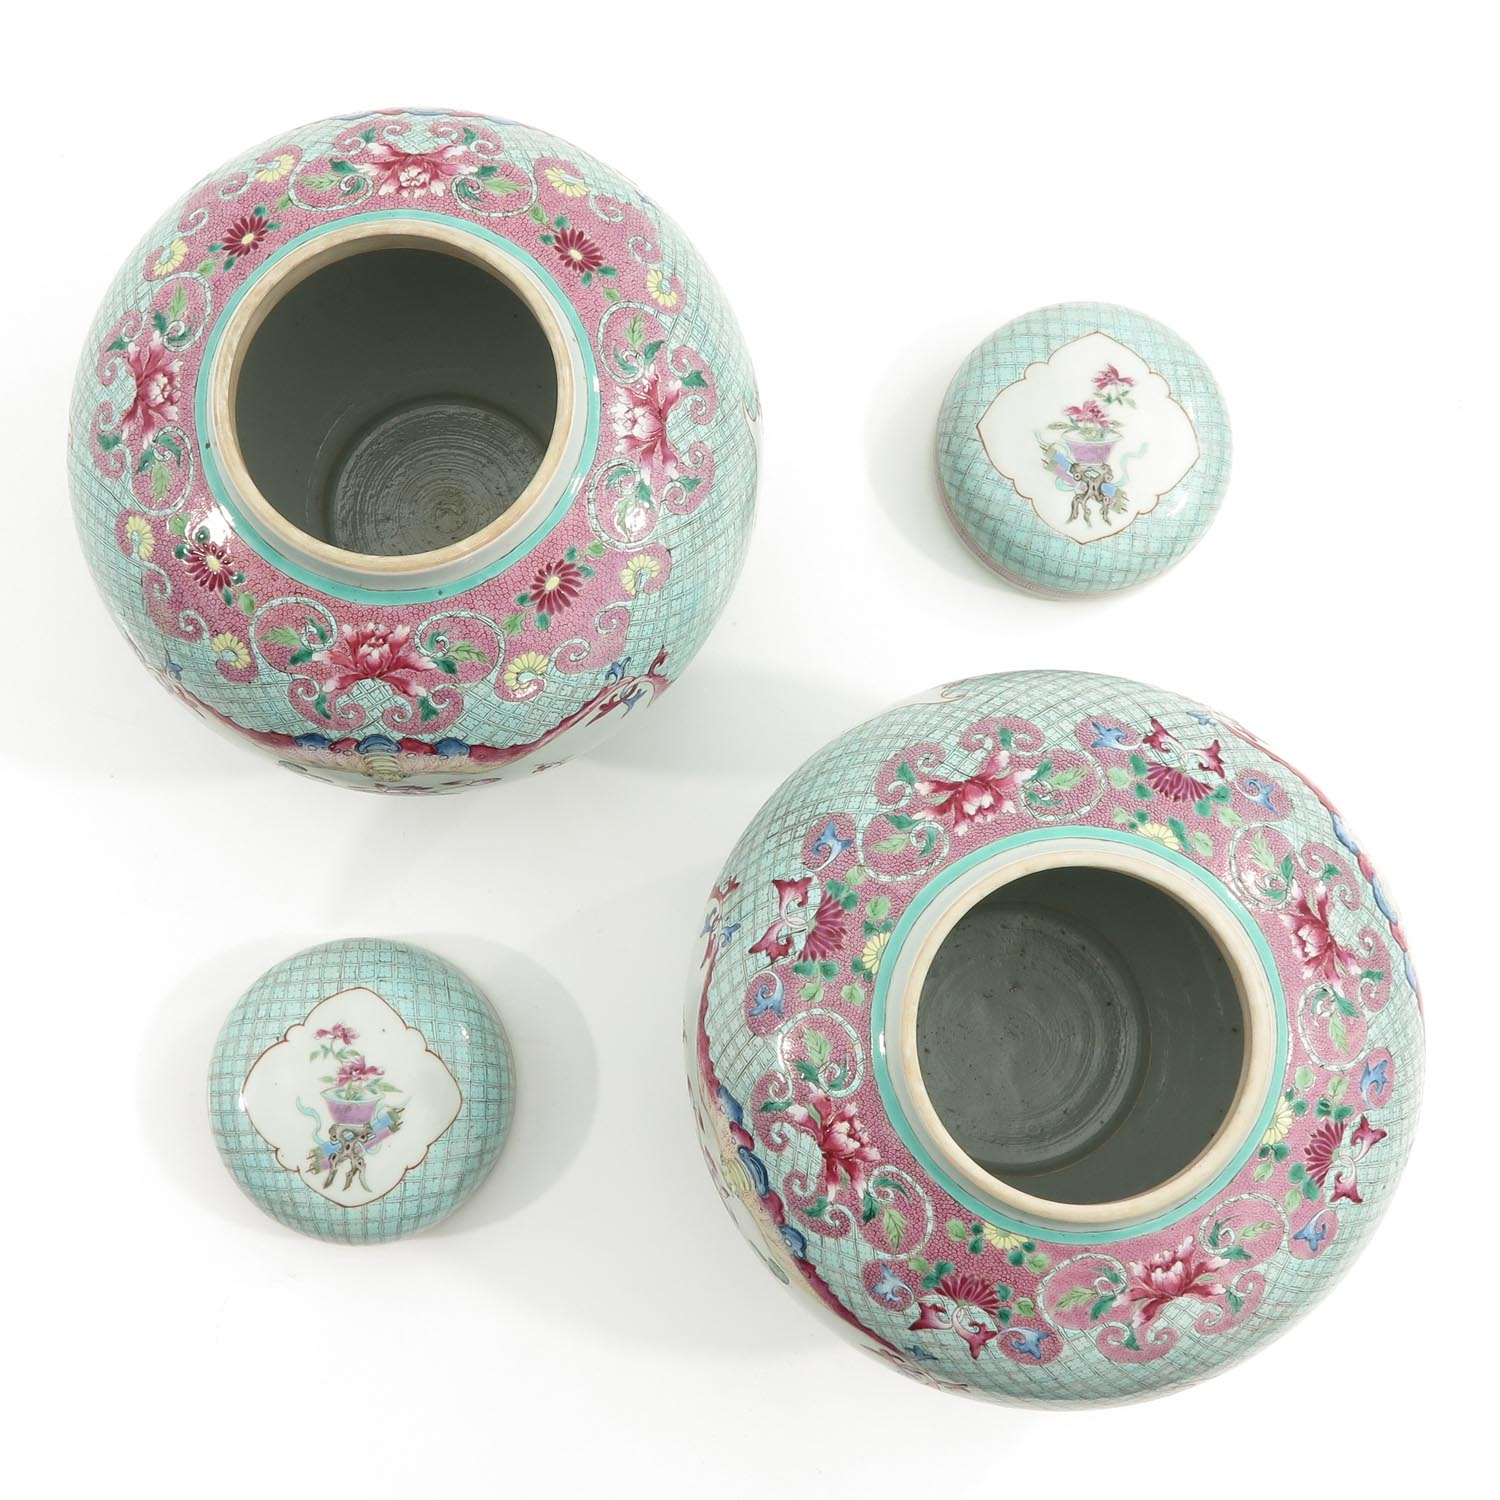 A Pair of Famille Rose Ginger Jars - Image 5 of 10